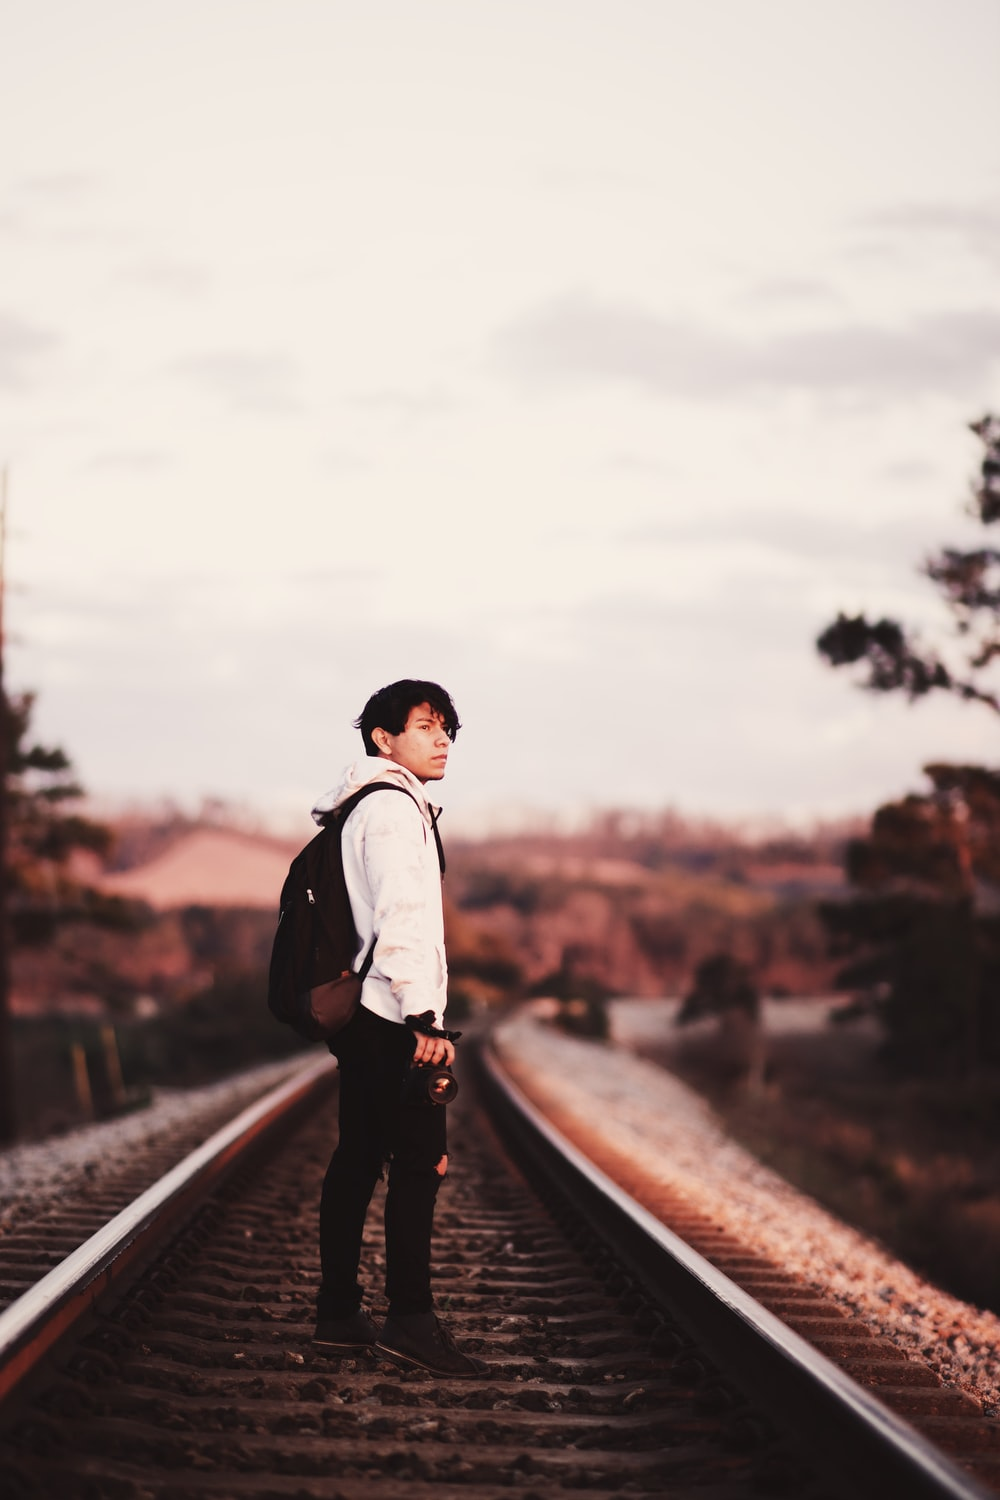 man standing on train rails during daytime